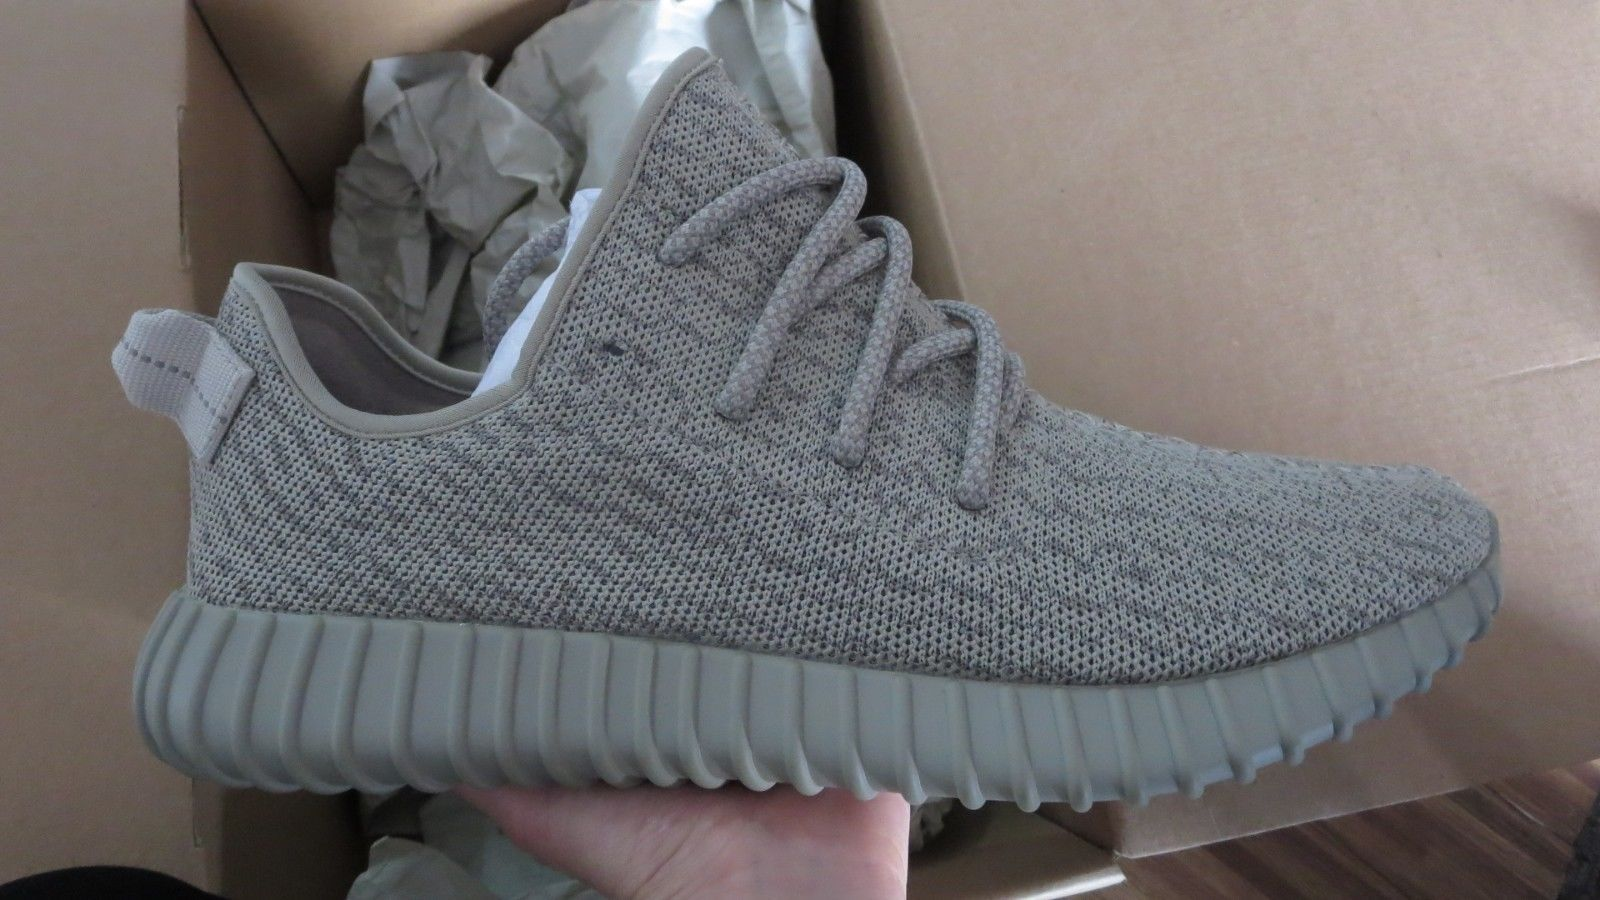 59d2d687502 New 100% Authentic Sz 9.5 Adidas Yeezy Boost 350 MOONROCKS AQ2660 by Kanye  West